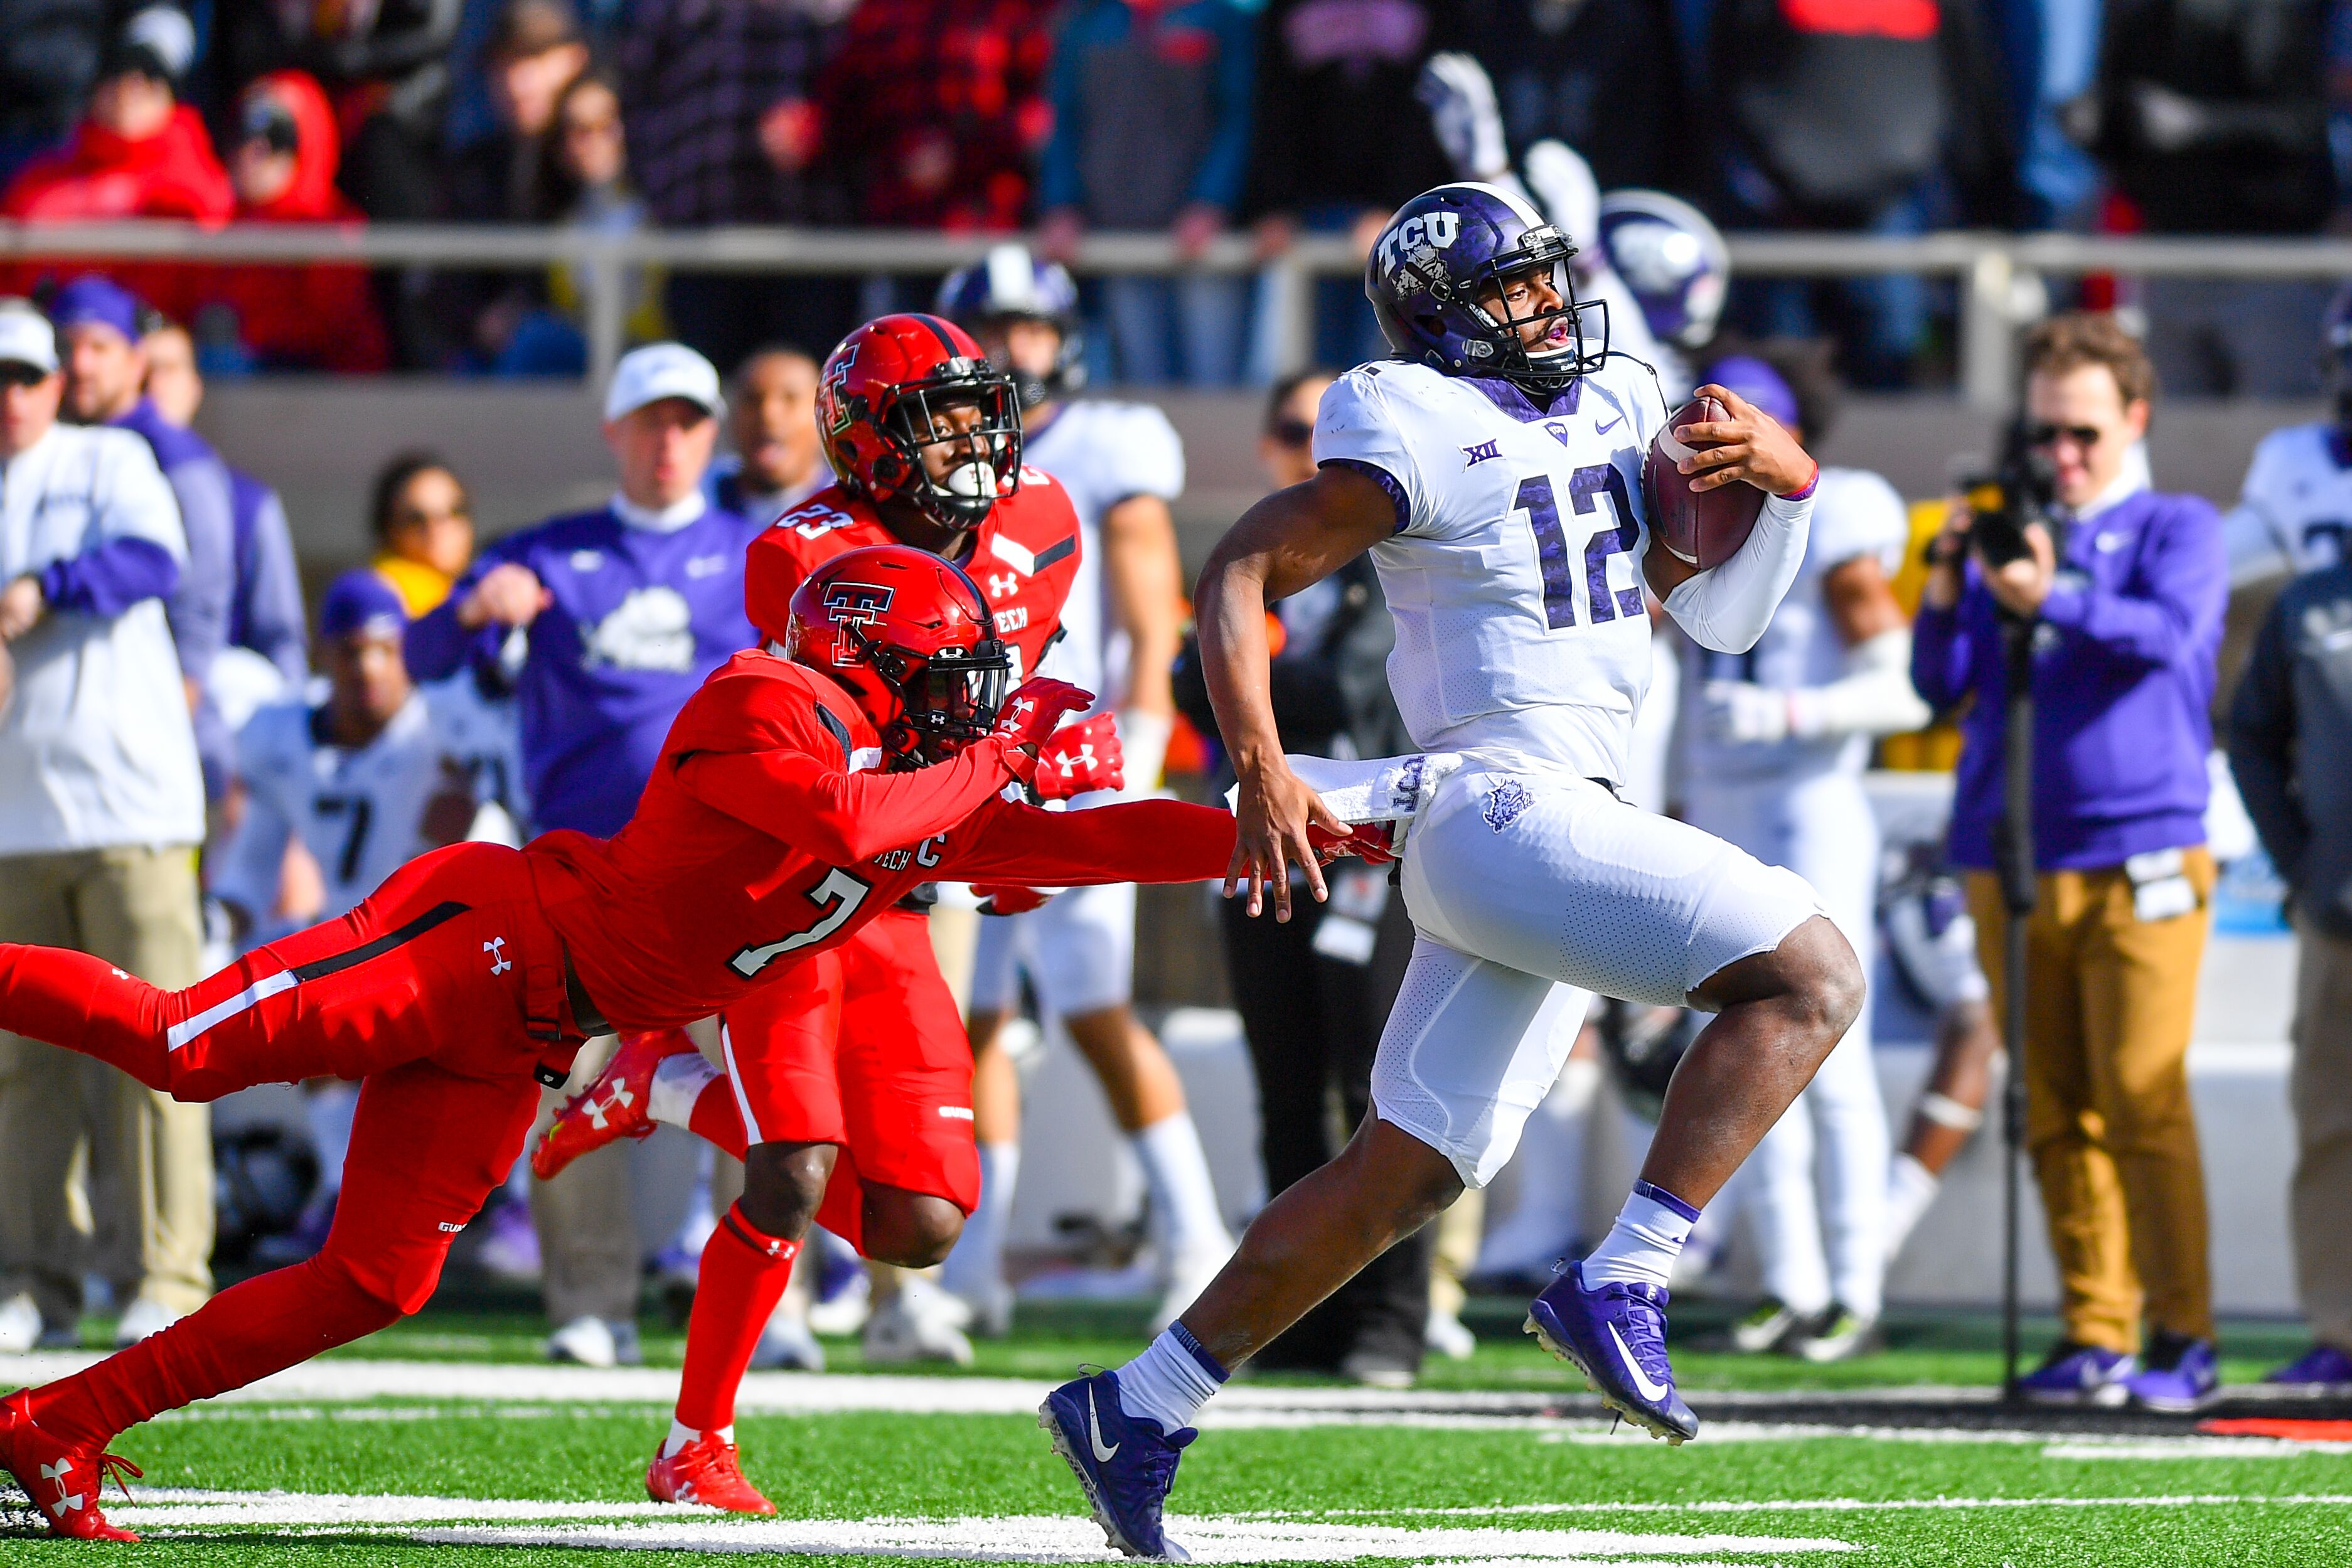 ed2c6335a0 TCU Football  Horned Frogs look to roll in-state rival SMU in Week 2